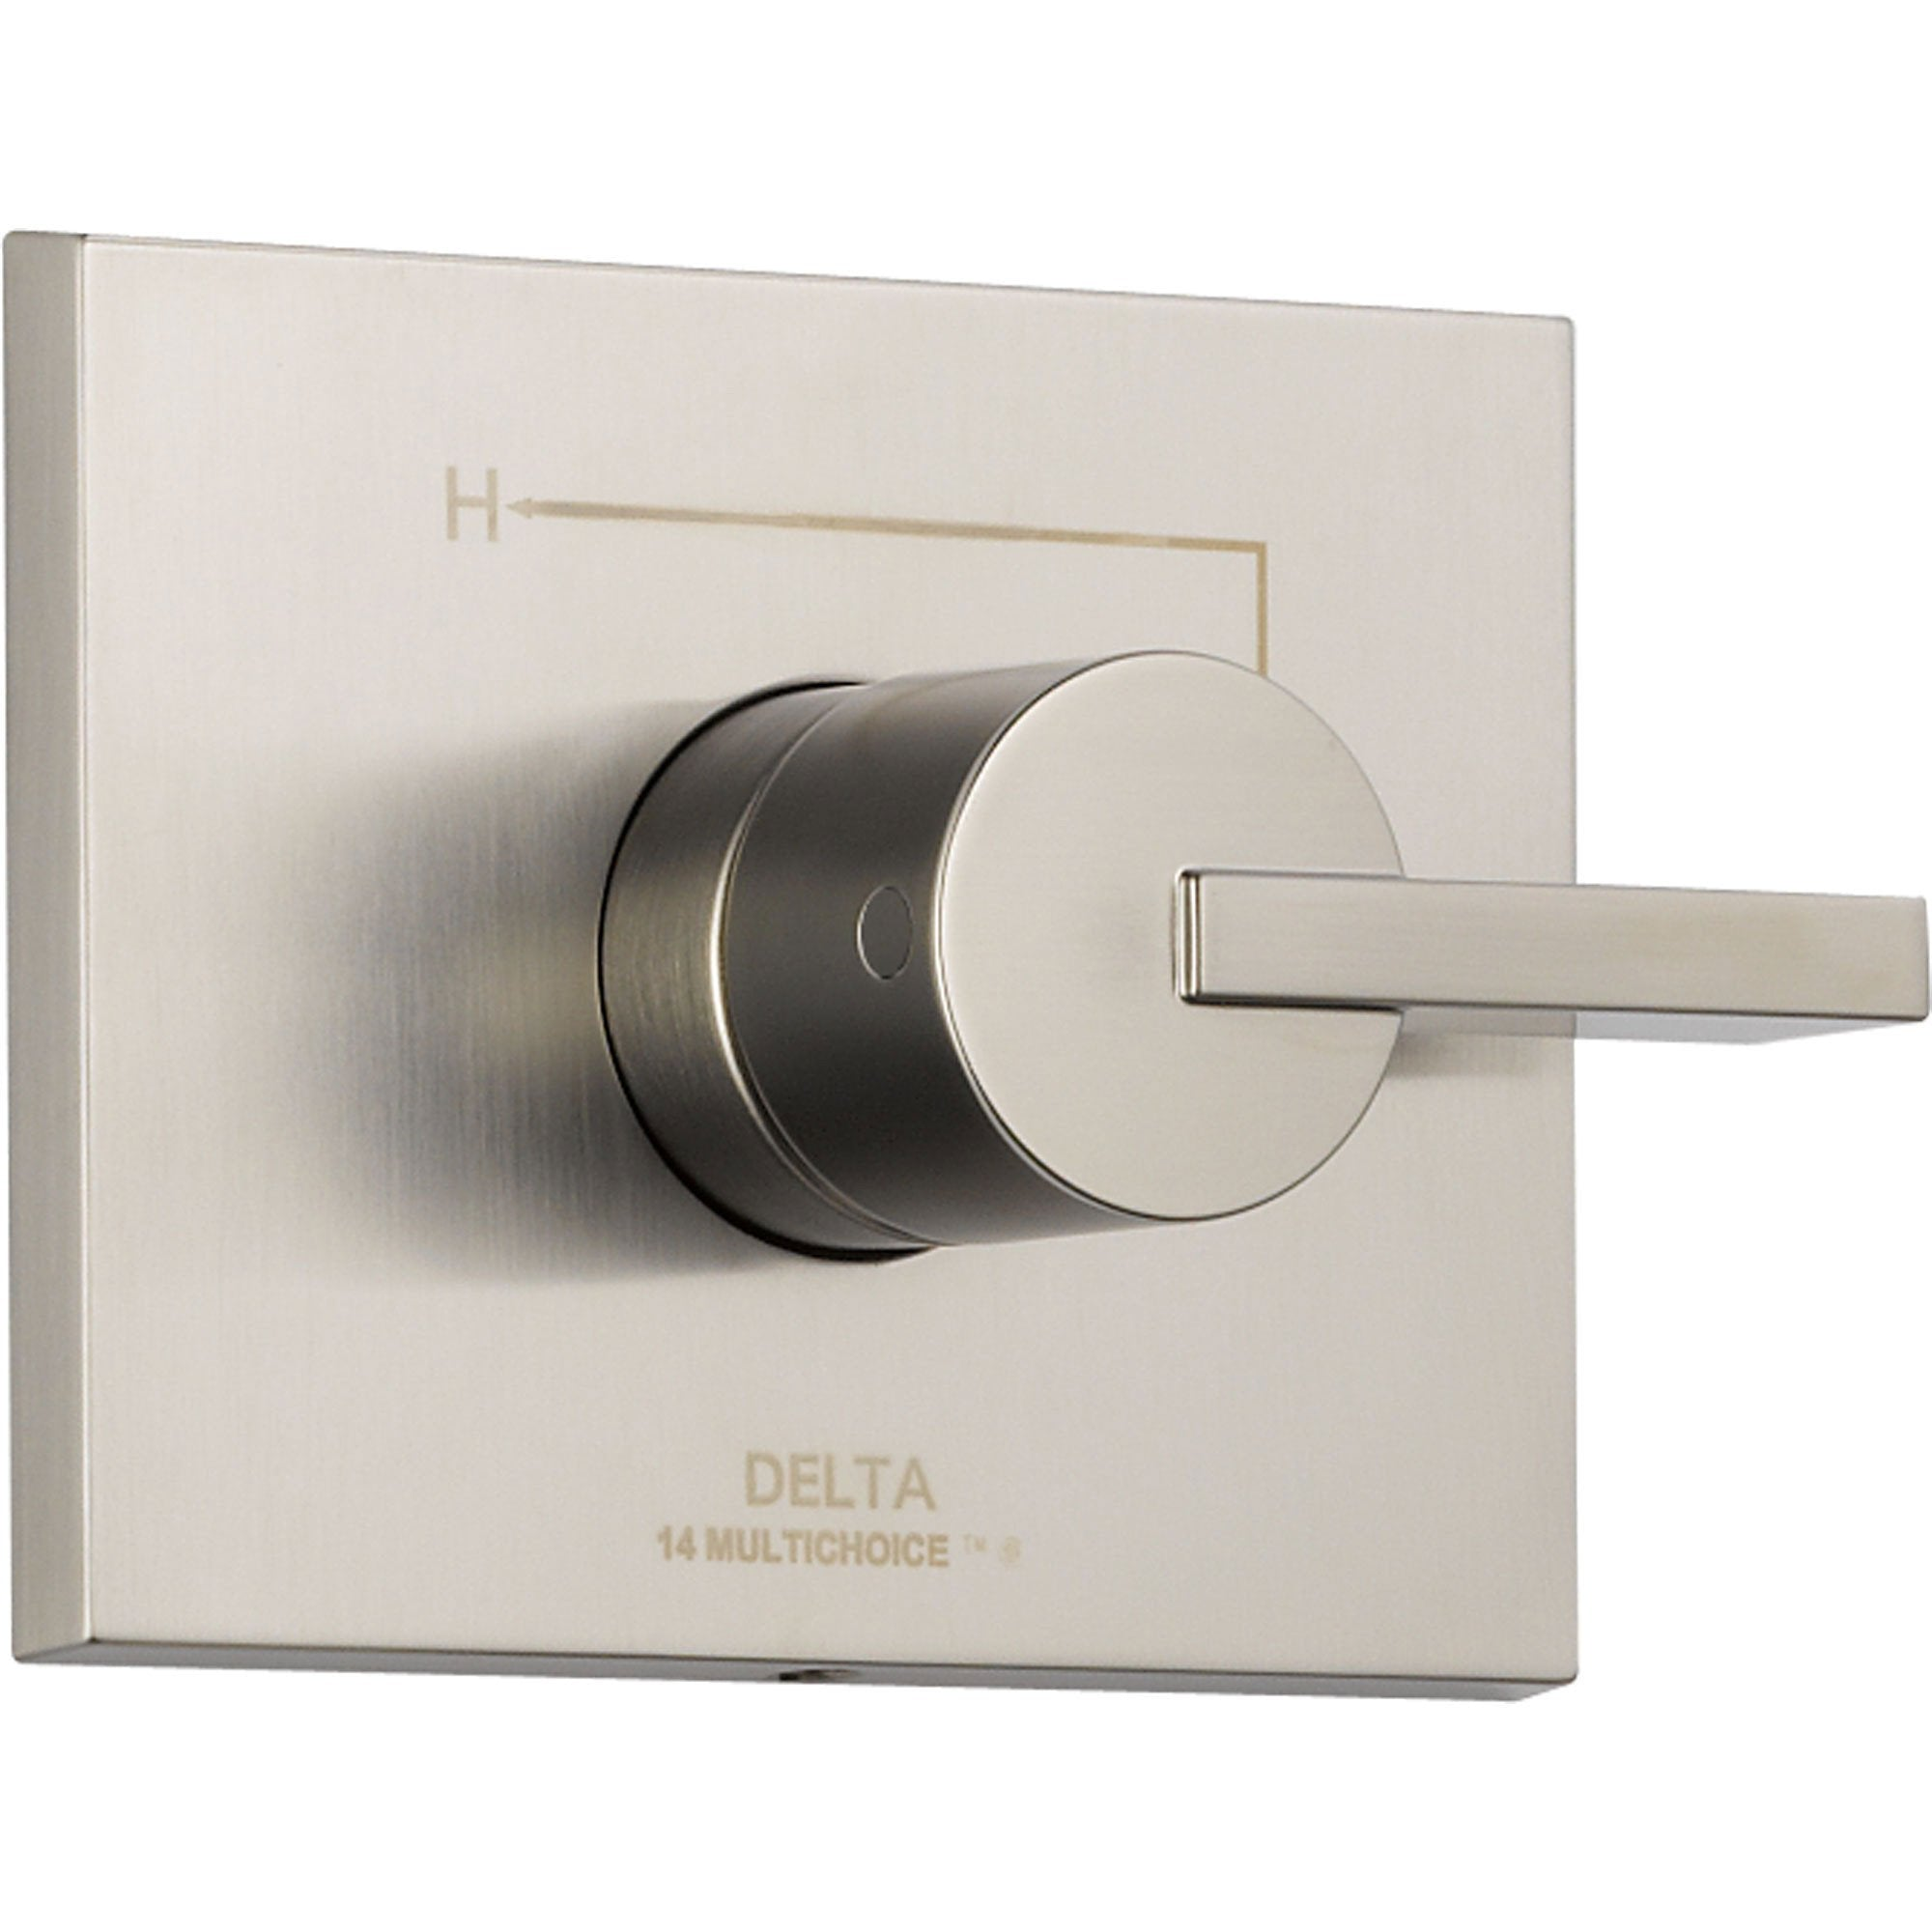 Delta Vero Stainless Steel Finish Single Handle Shower Control with Valve D019V